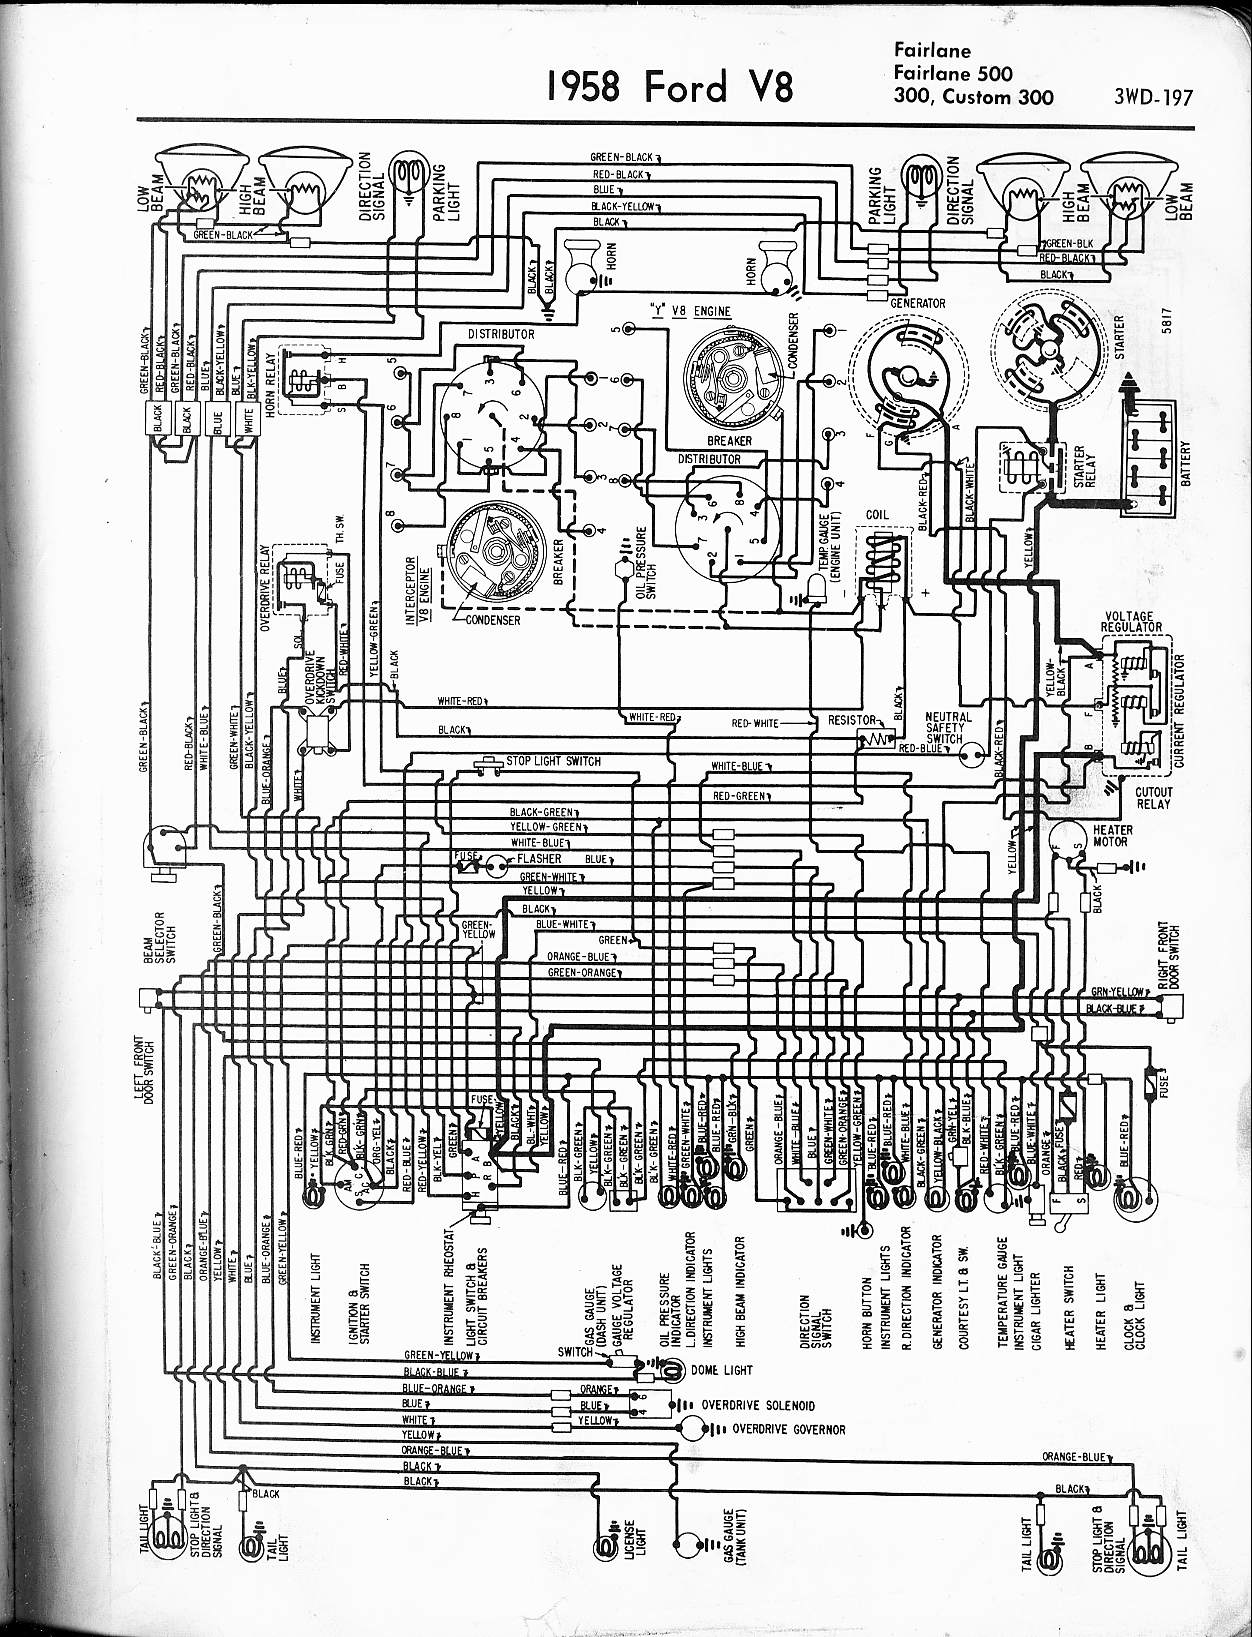 57 65 Ford Wiring Diagrams 1996 Subaru Schematic 1958 V8 Fairlane 500 300 Custom